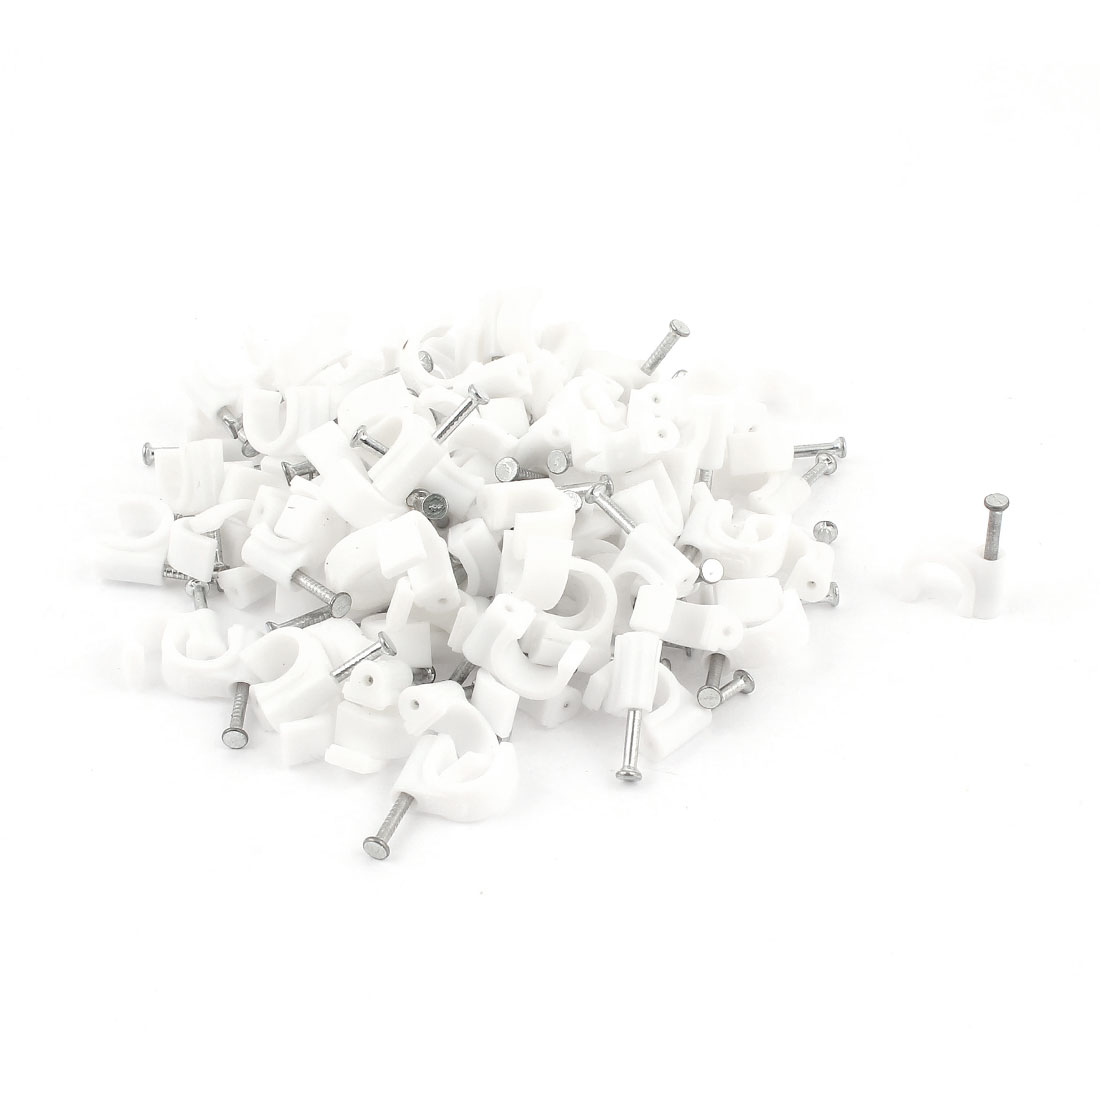 100 Pcs PVC 8mm Cable Wire Tubing Pipe C Clamps Nail Clips White